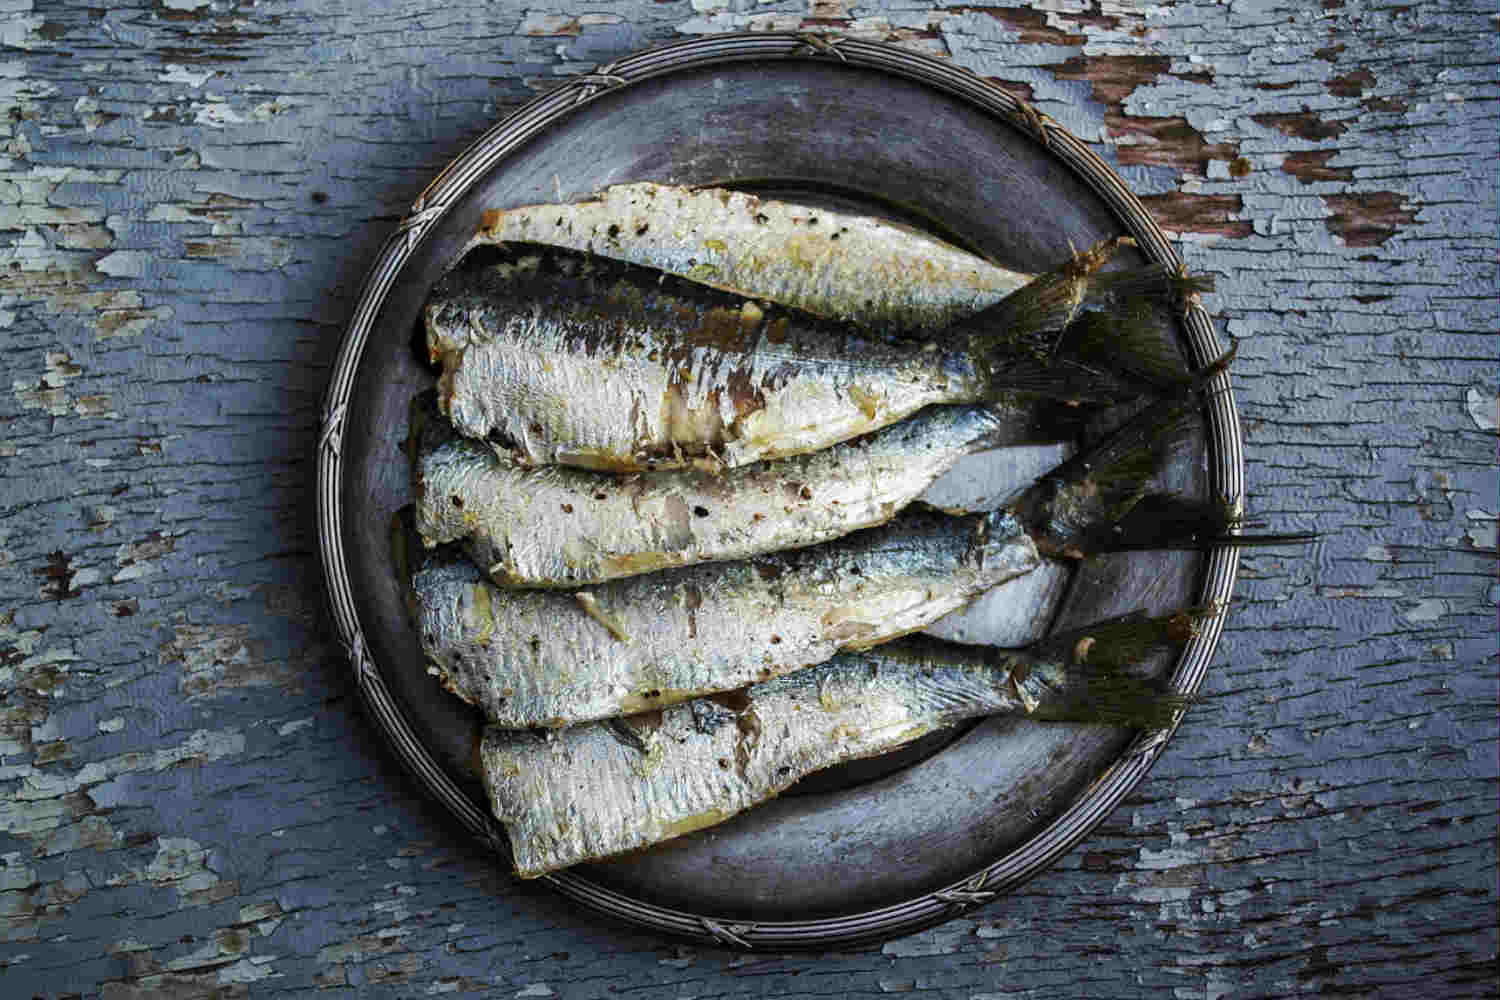 plate of sardines at feast of st anthony